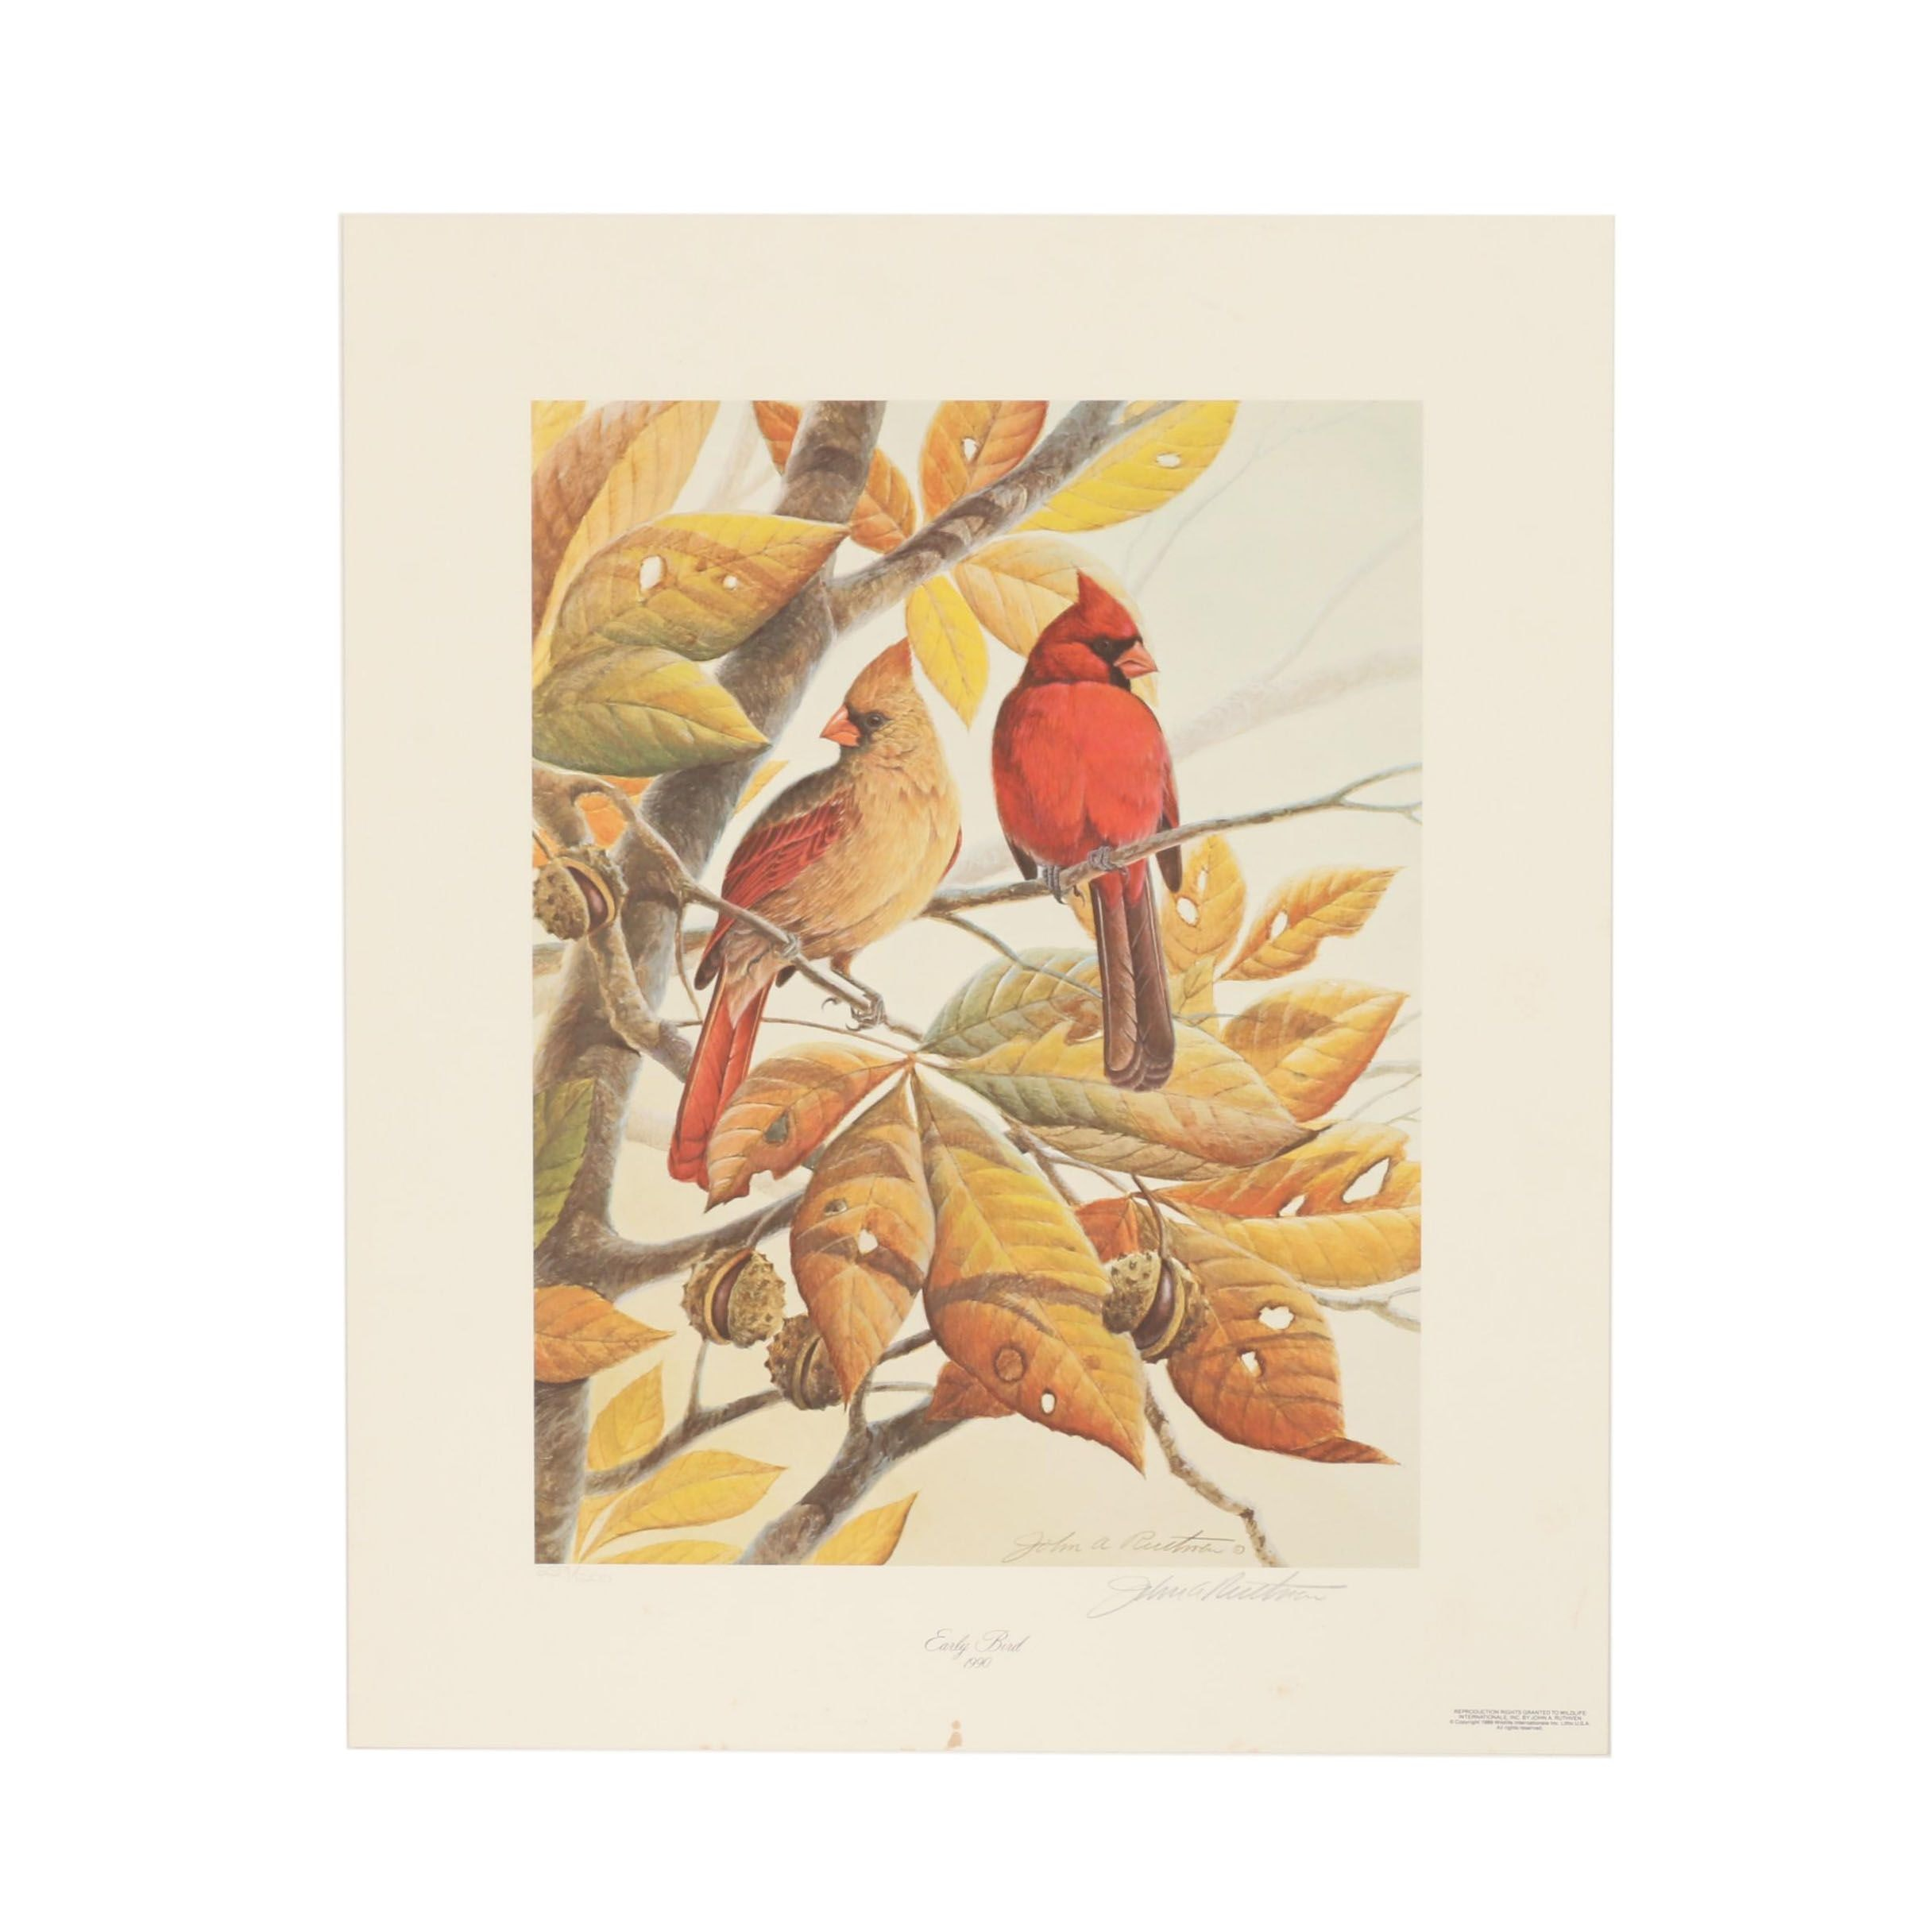 """John Ruthven Limited Edition Offset Lithograph """"Early Bird 1990"""""""